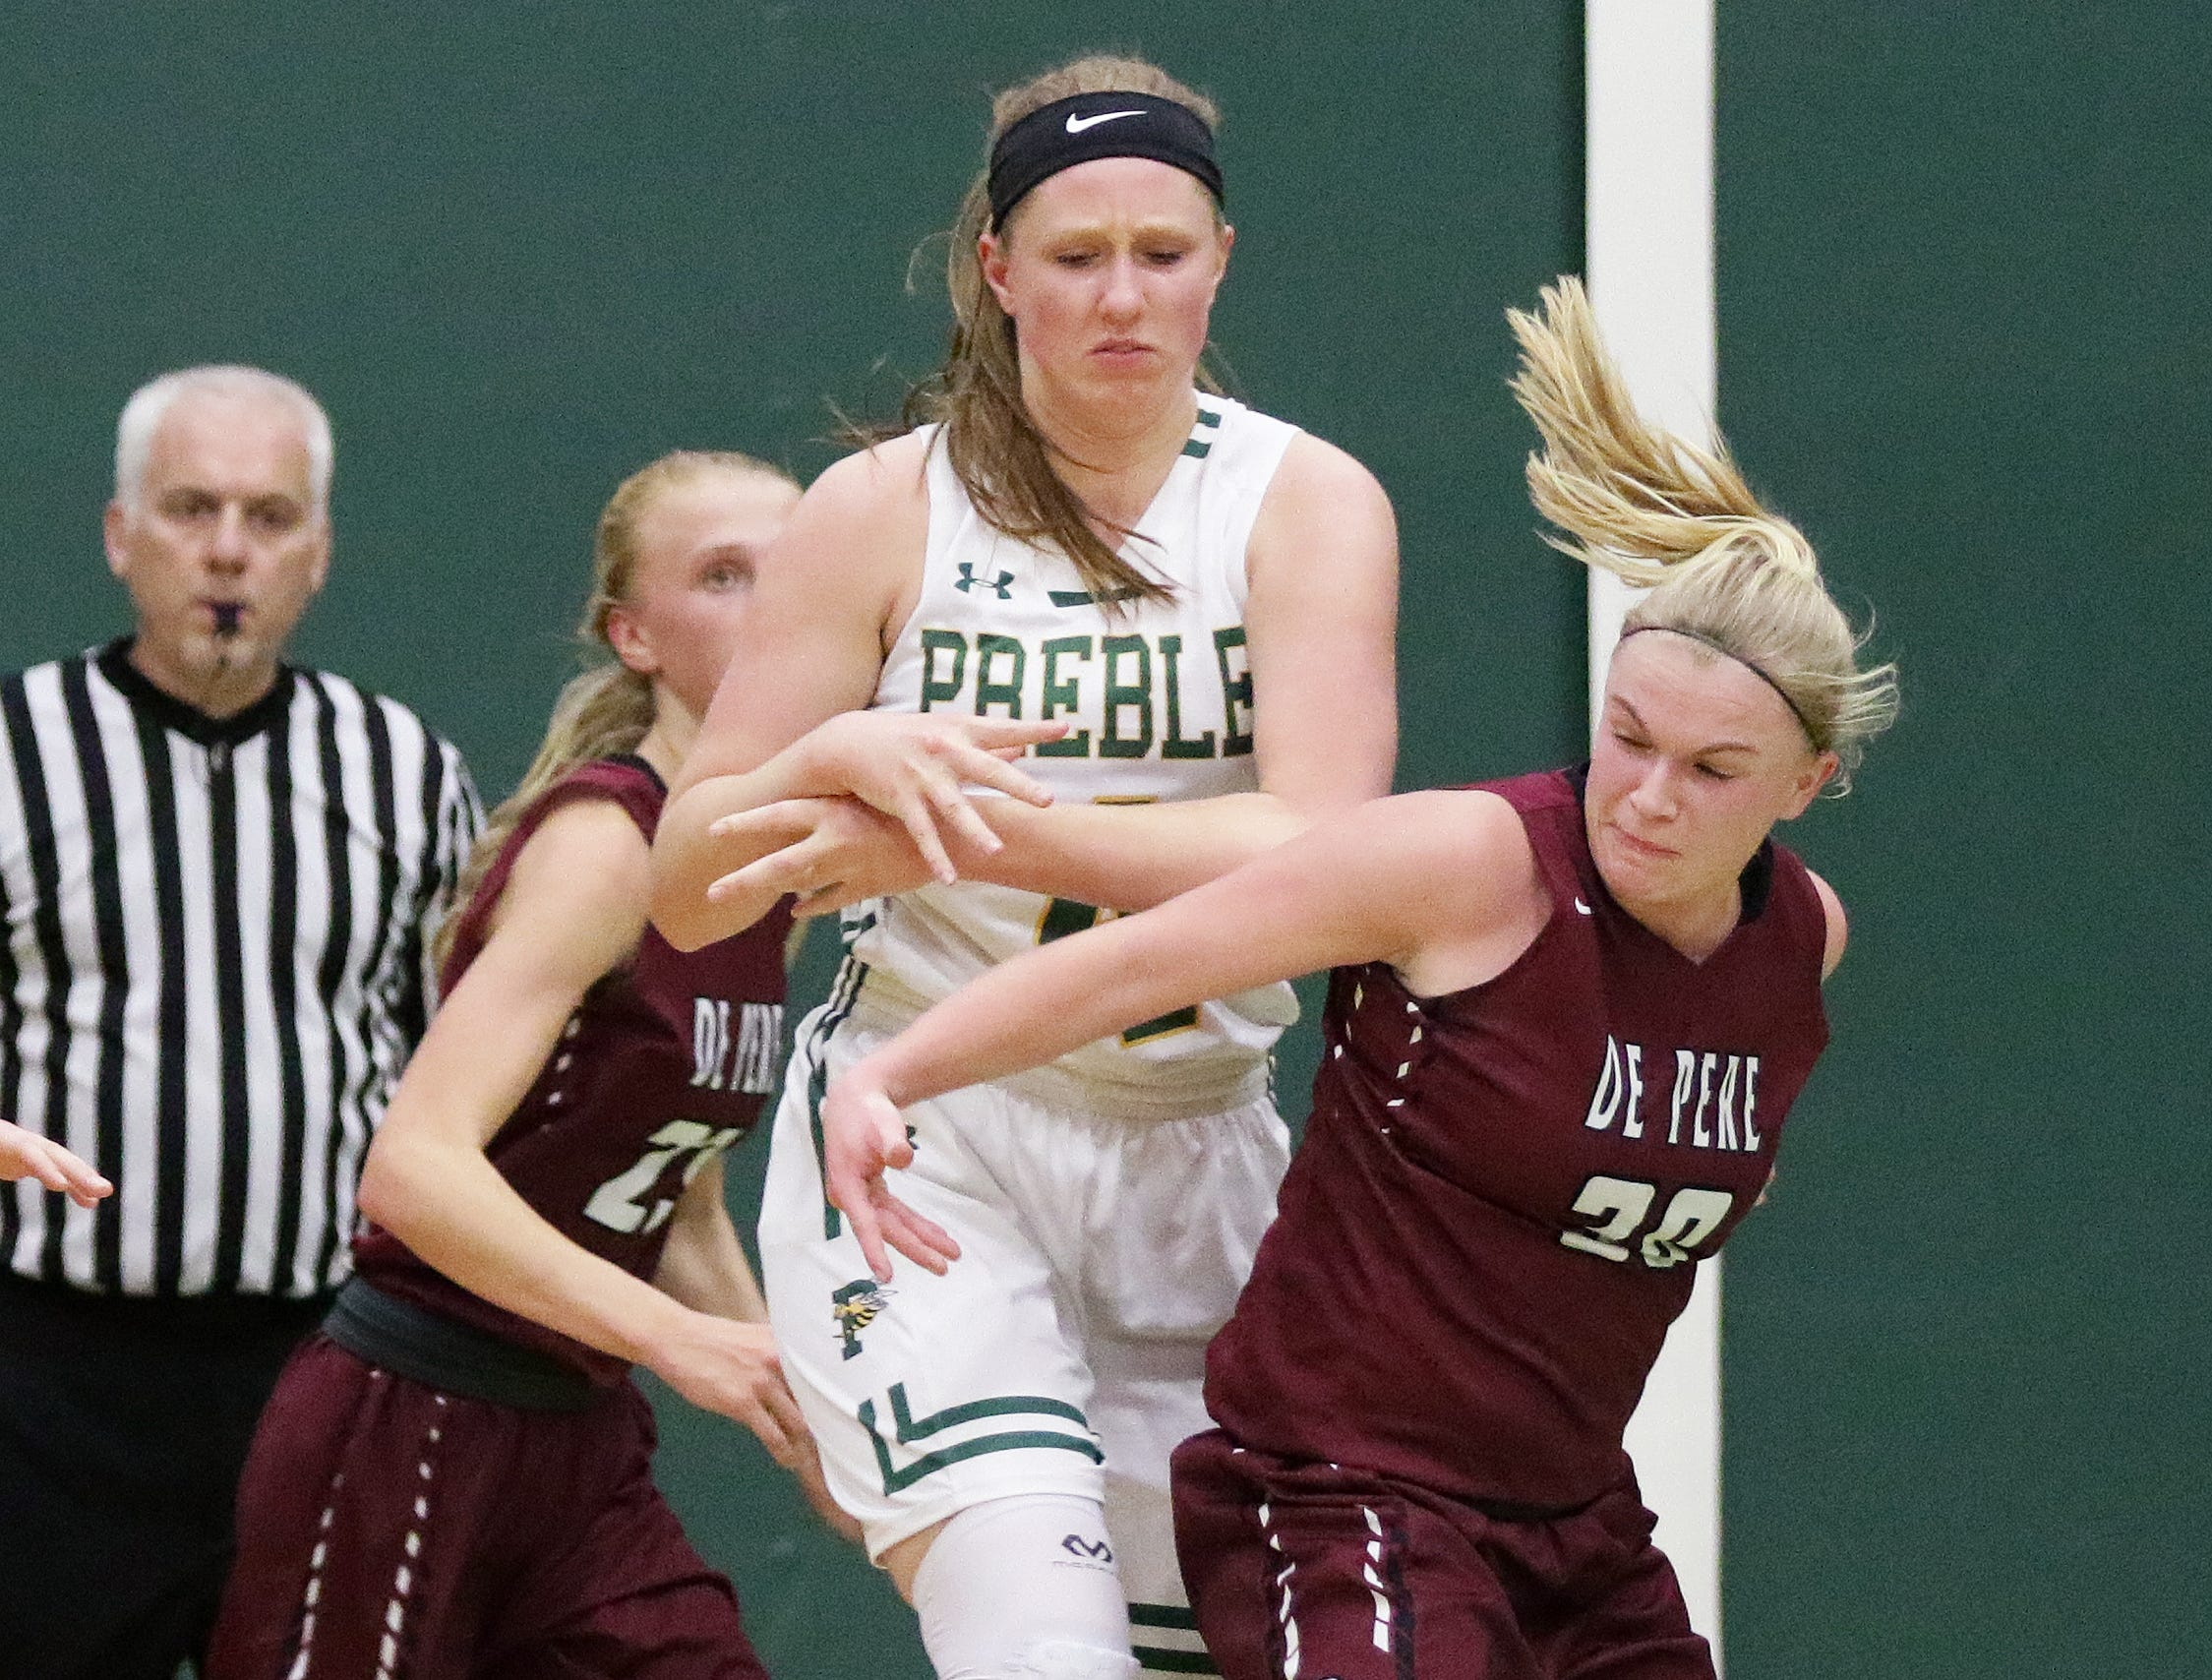 De Pere's Rachel Kerkhoff (30) steals the ball from Green Bay Preble's Kendall Renard (4) in a girls basketball game at Preble high school on Tuesday, January 8, 2019 in Green Bay, Wis.